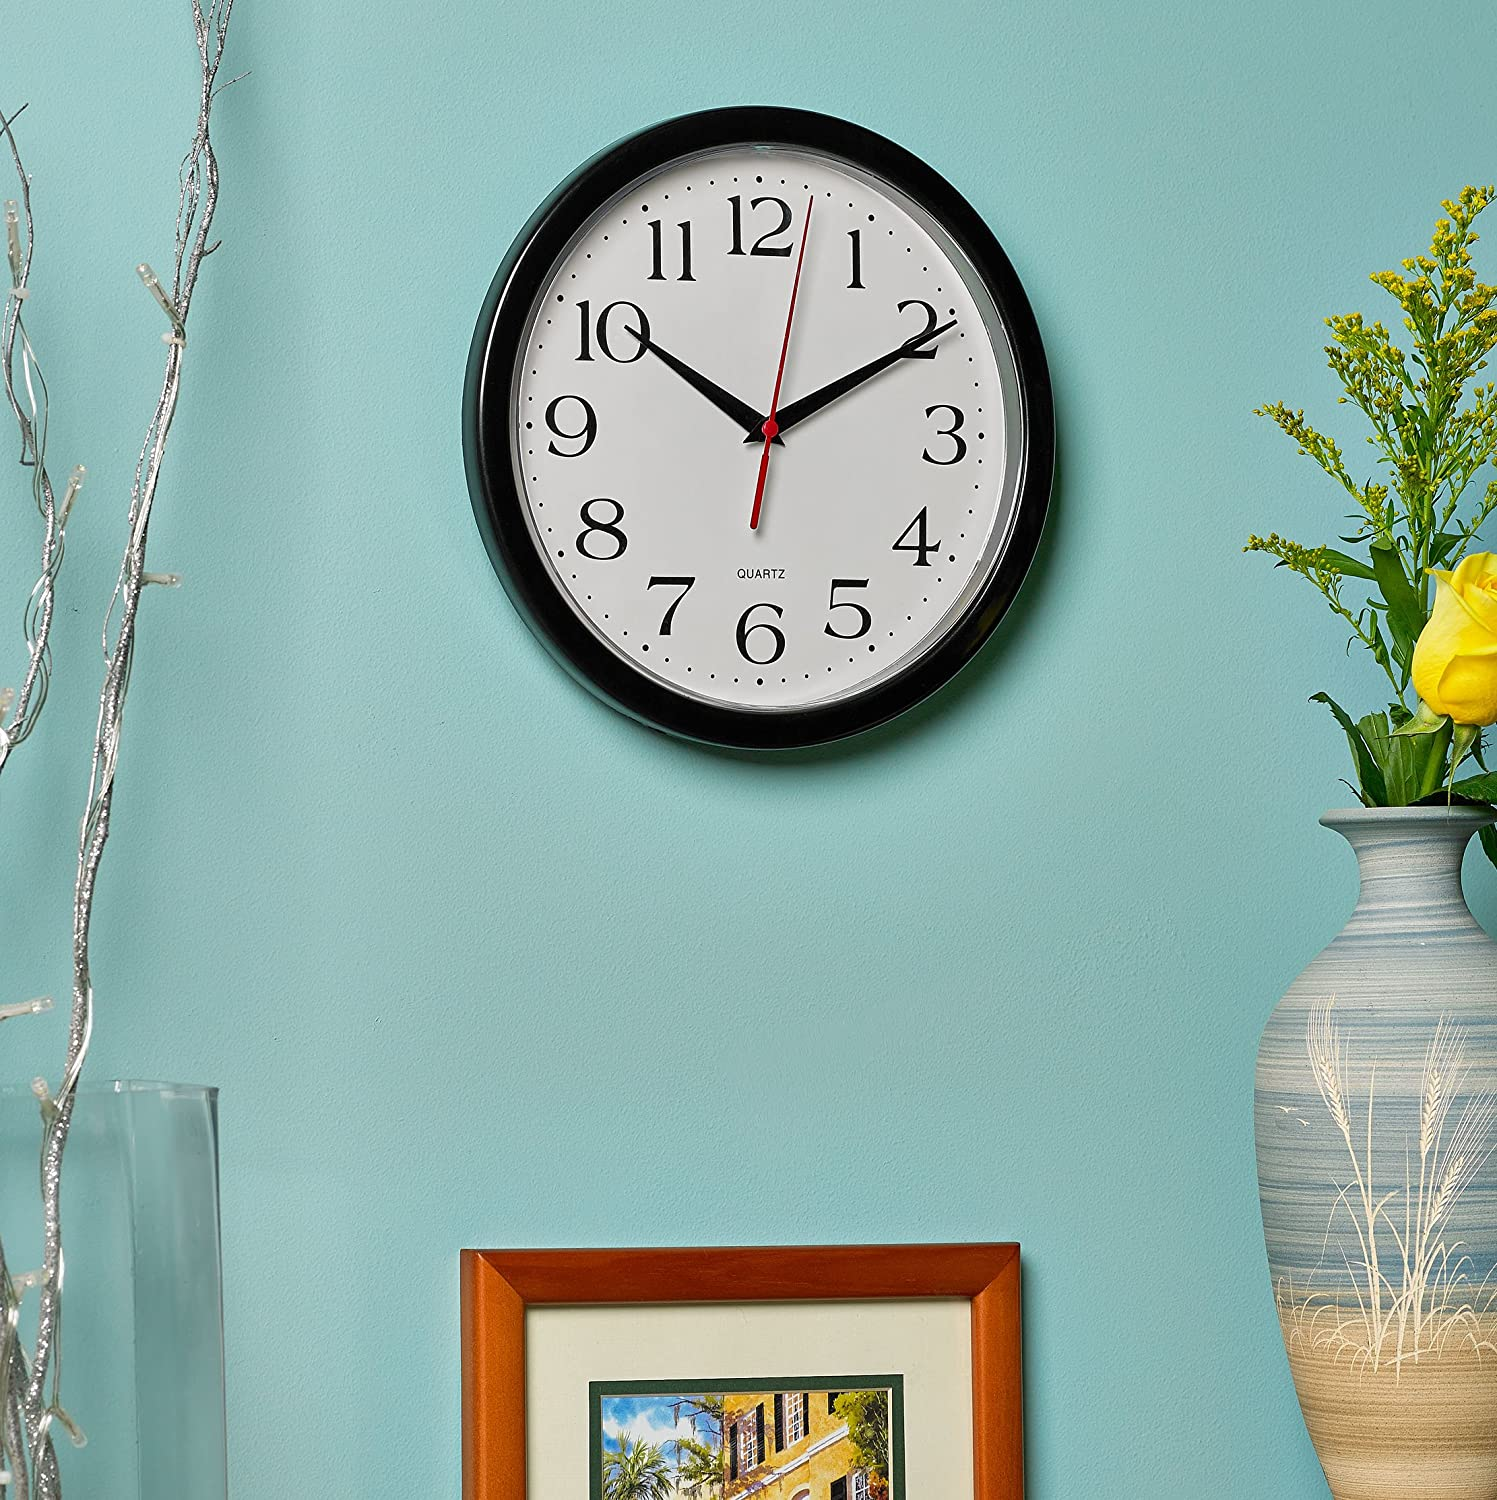 10-inch Round Easy-to-Read Wall Clock